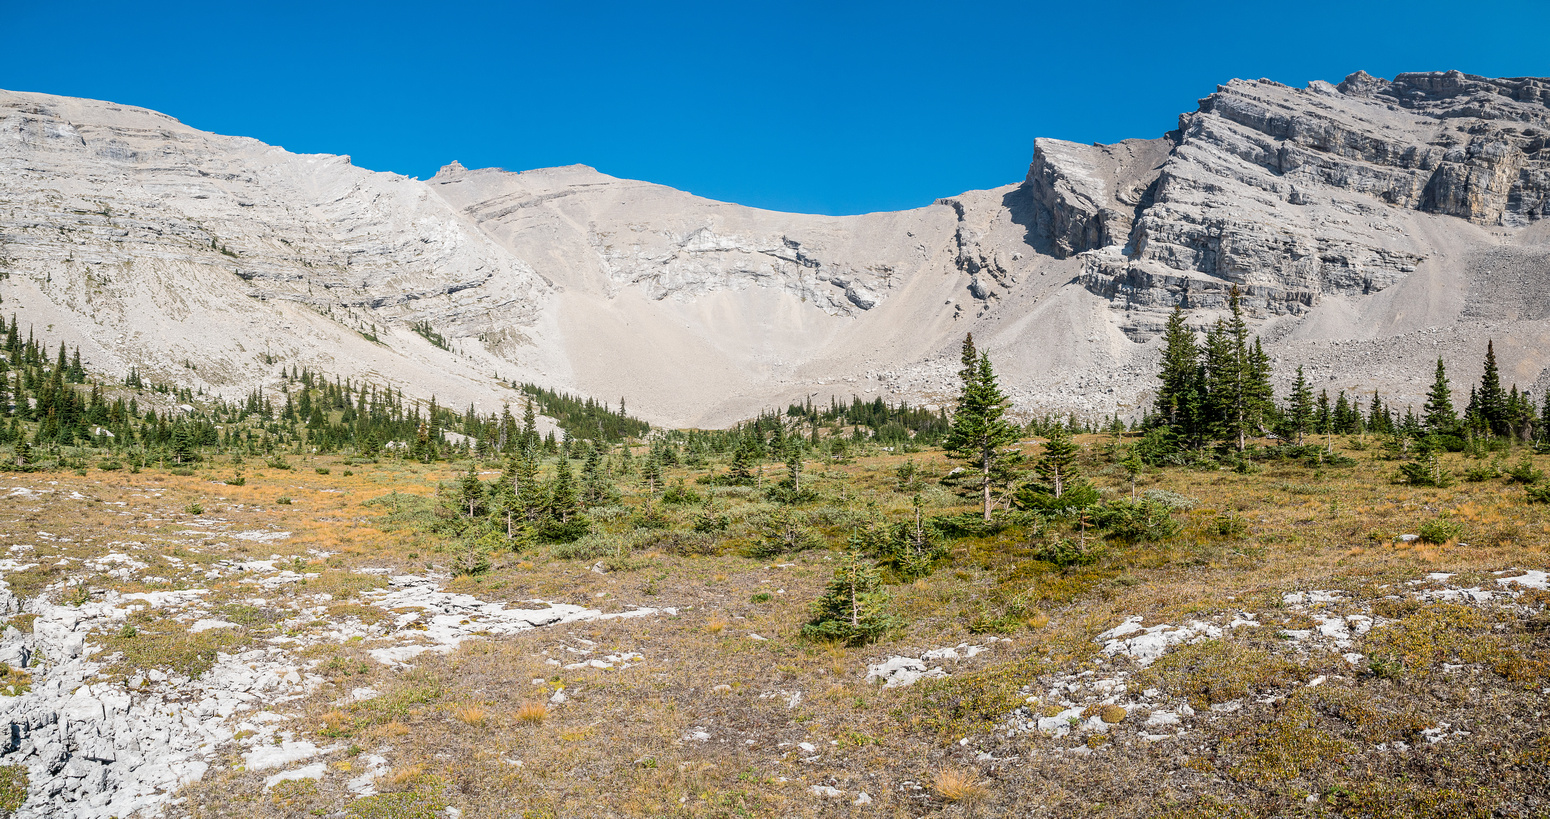 Looking back to the summit as we exit the lovely alpine meadow. Lots of grizzly diggings here!